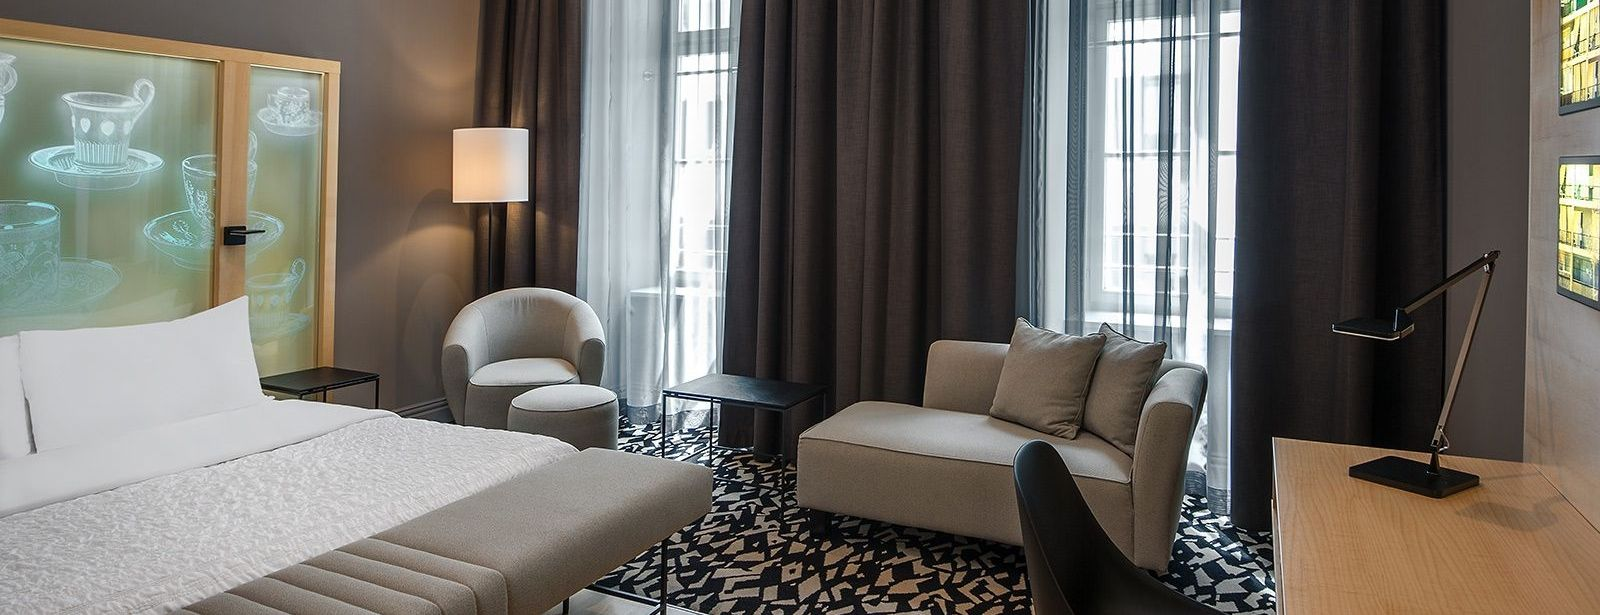 Accommodation in Vienna Hotel Le Meridien